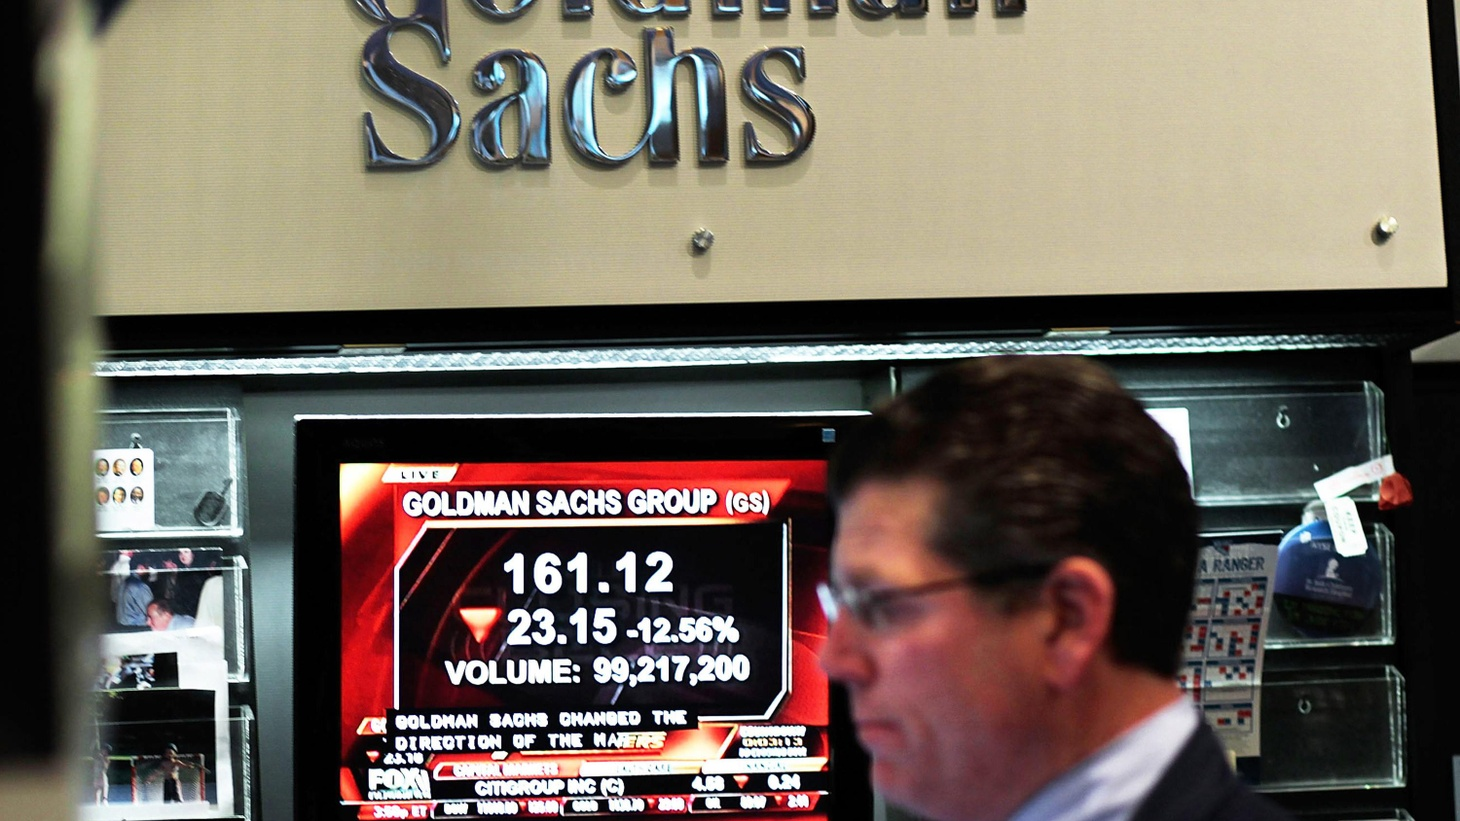 Democrats and Republicans are trying to use public anger at Wall Street to boost their chances in this year's elections. We hear how Goldman Sachs has become the poster child for finance reform. ALso, flights resume but the European travel chaos continues, and the US Supreme Court and cruelty to animals.